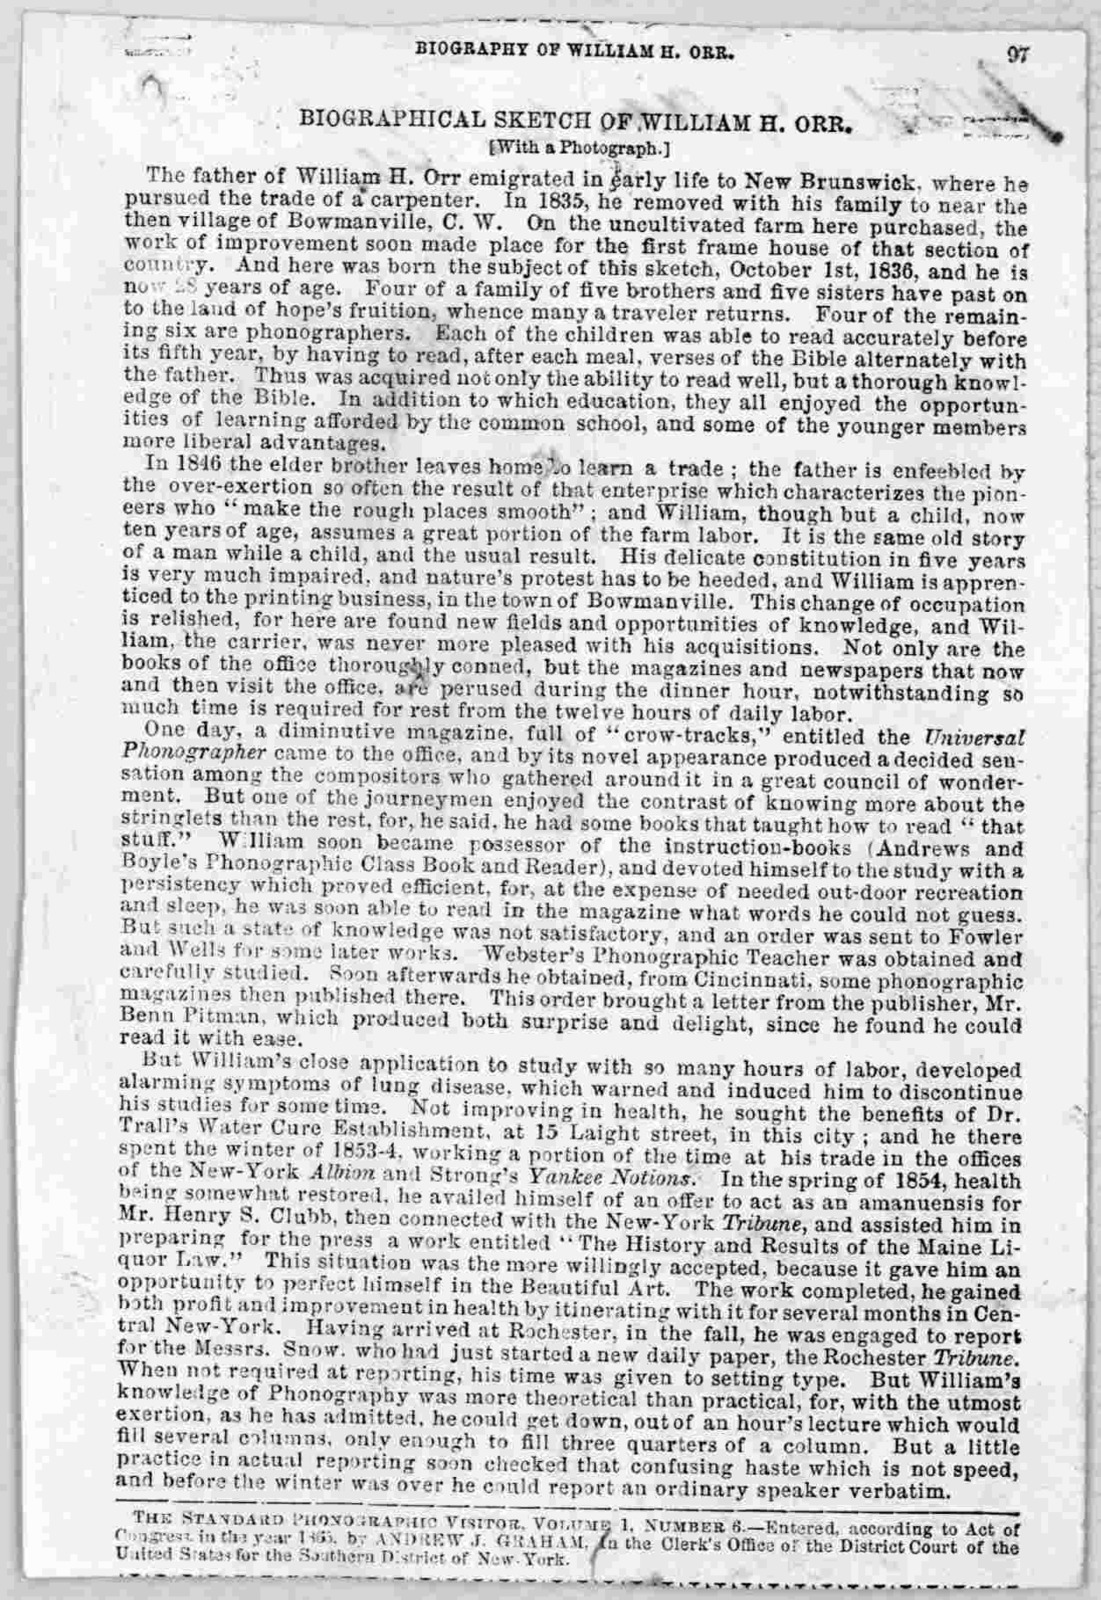 Biographical sketch of William H. Orr [New York? c. 1865].